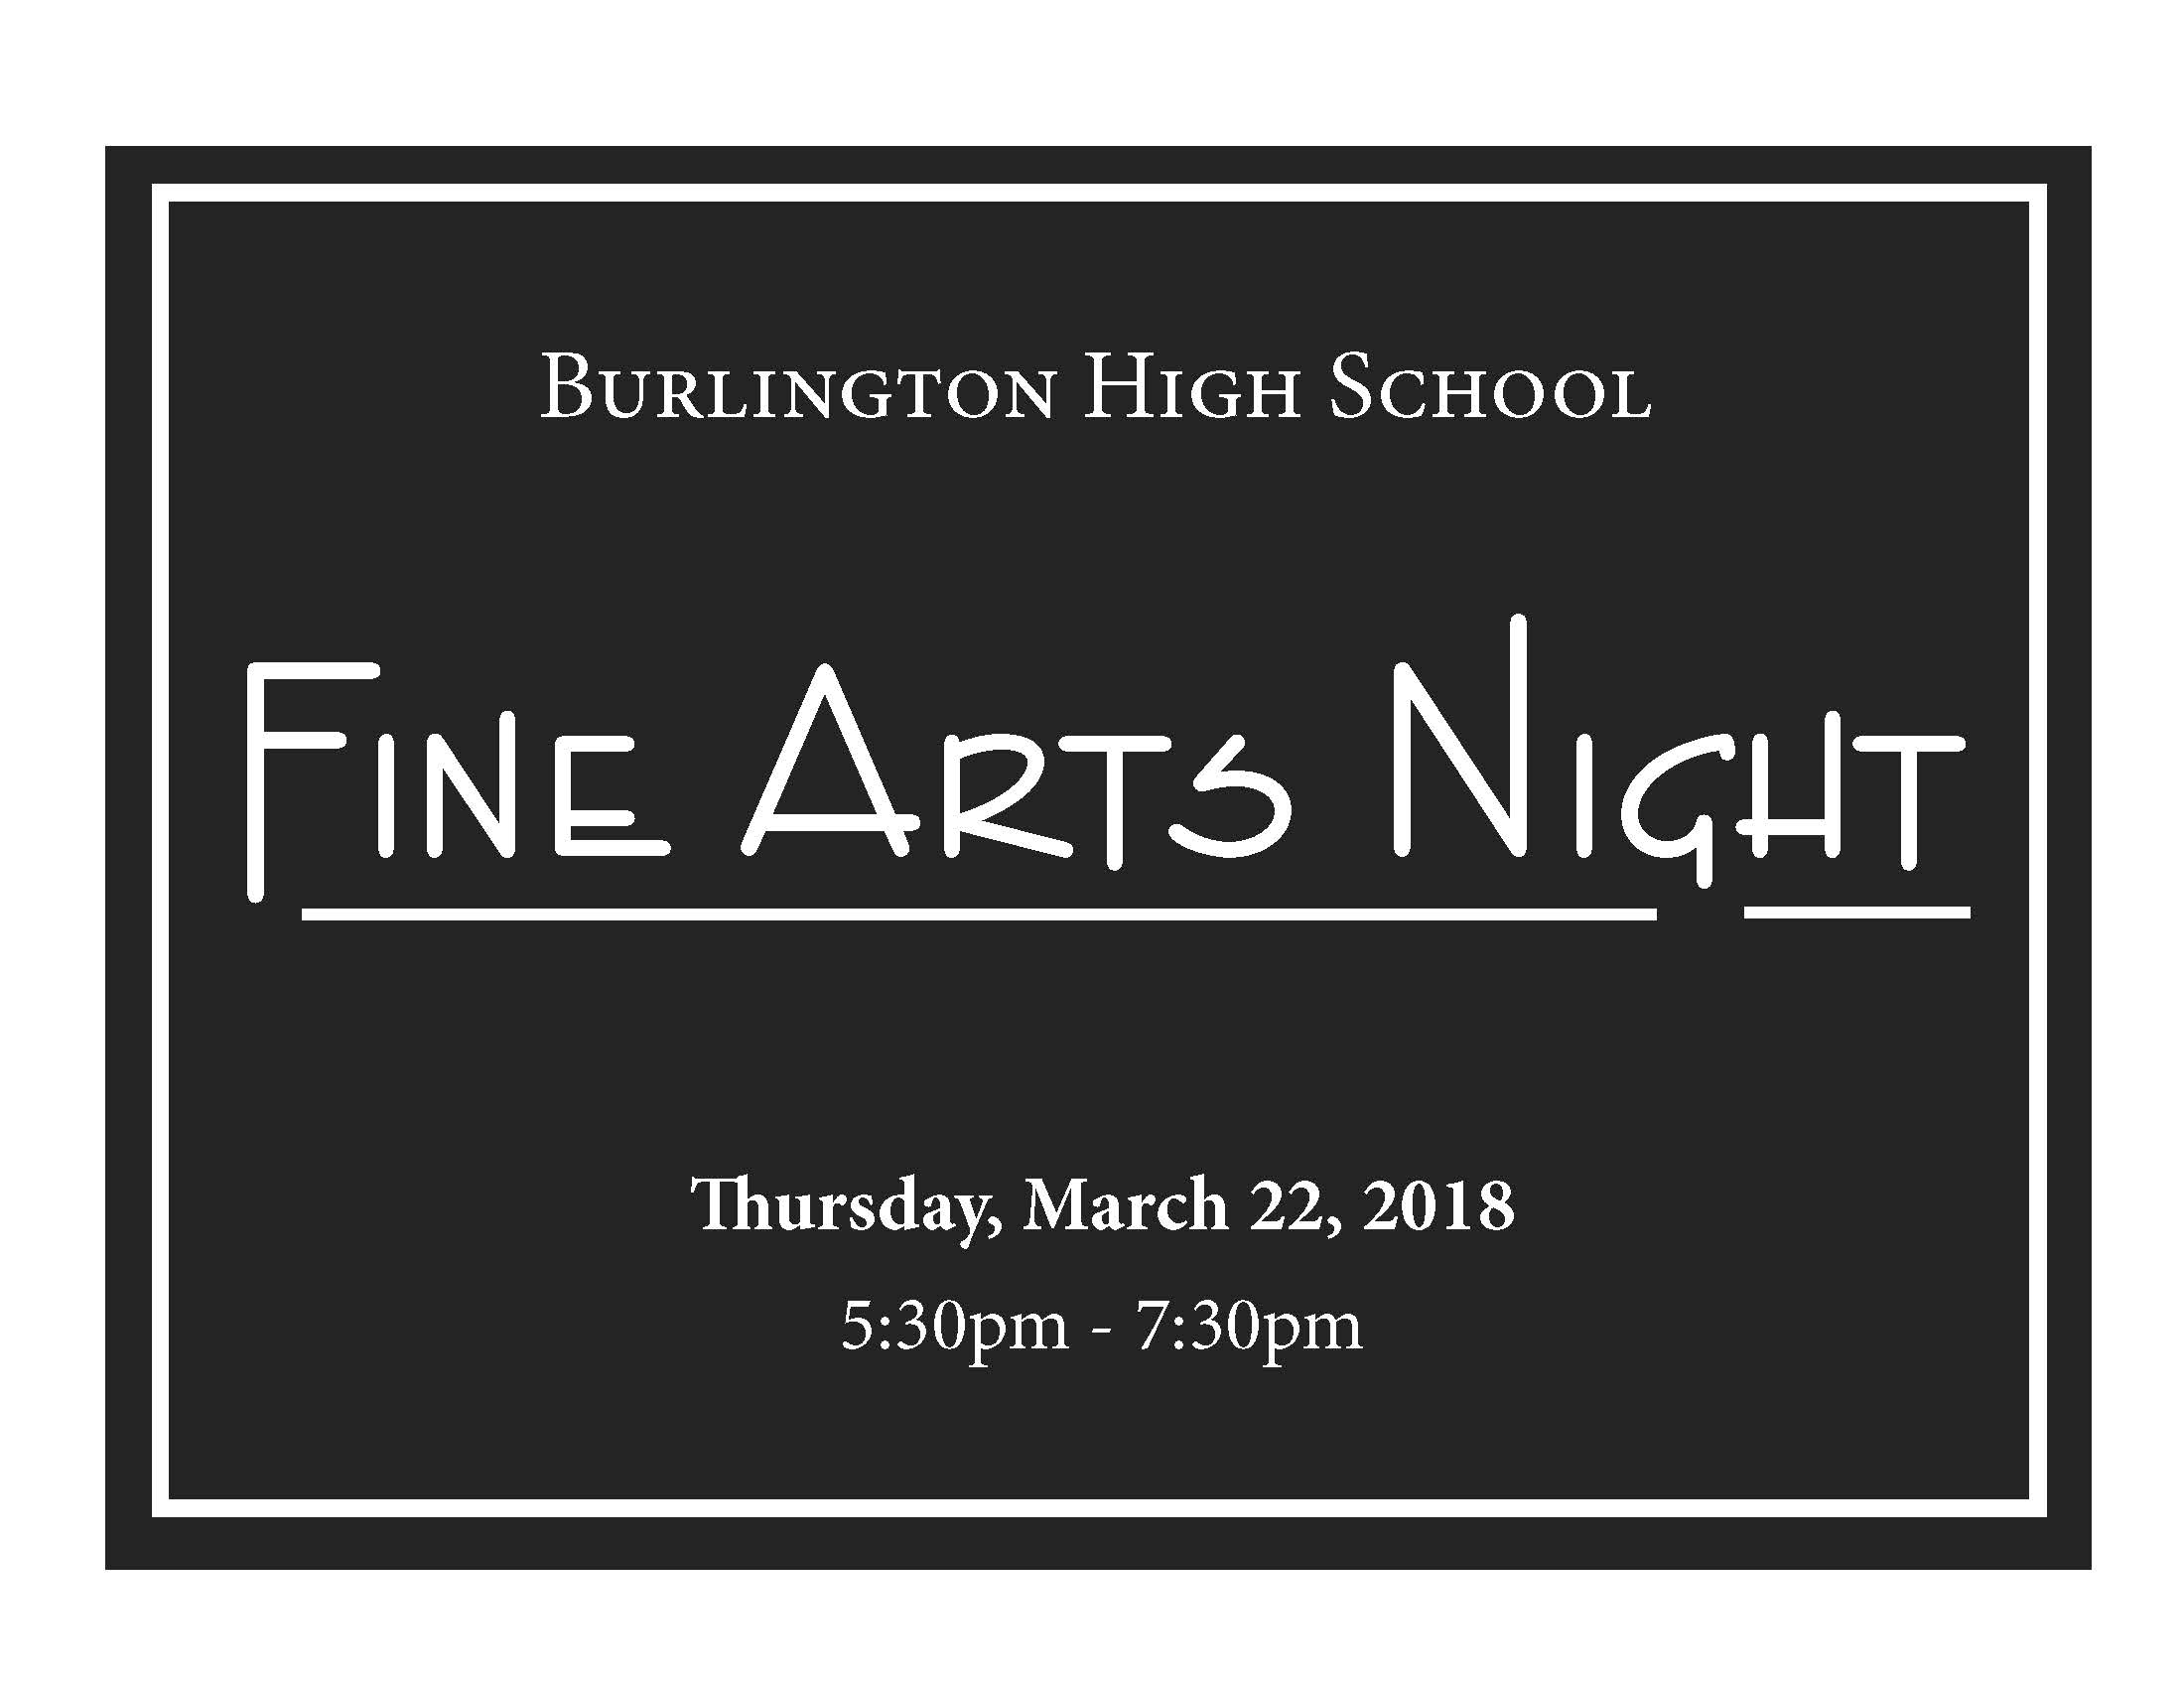 Fine Arts Night Ad